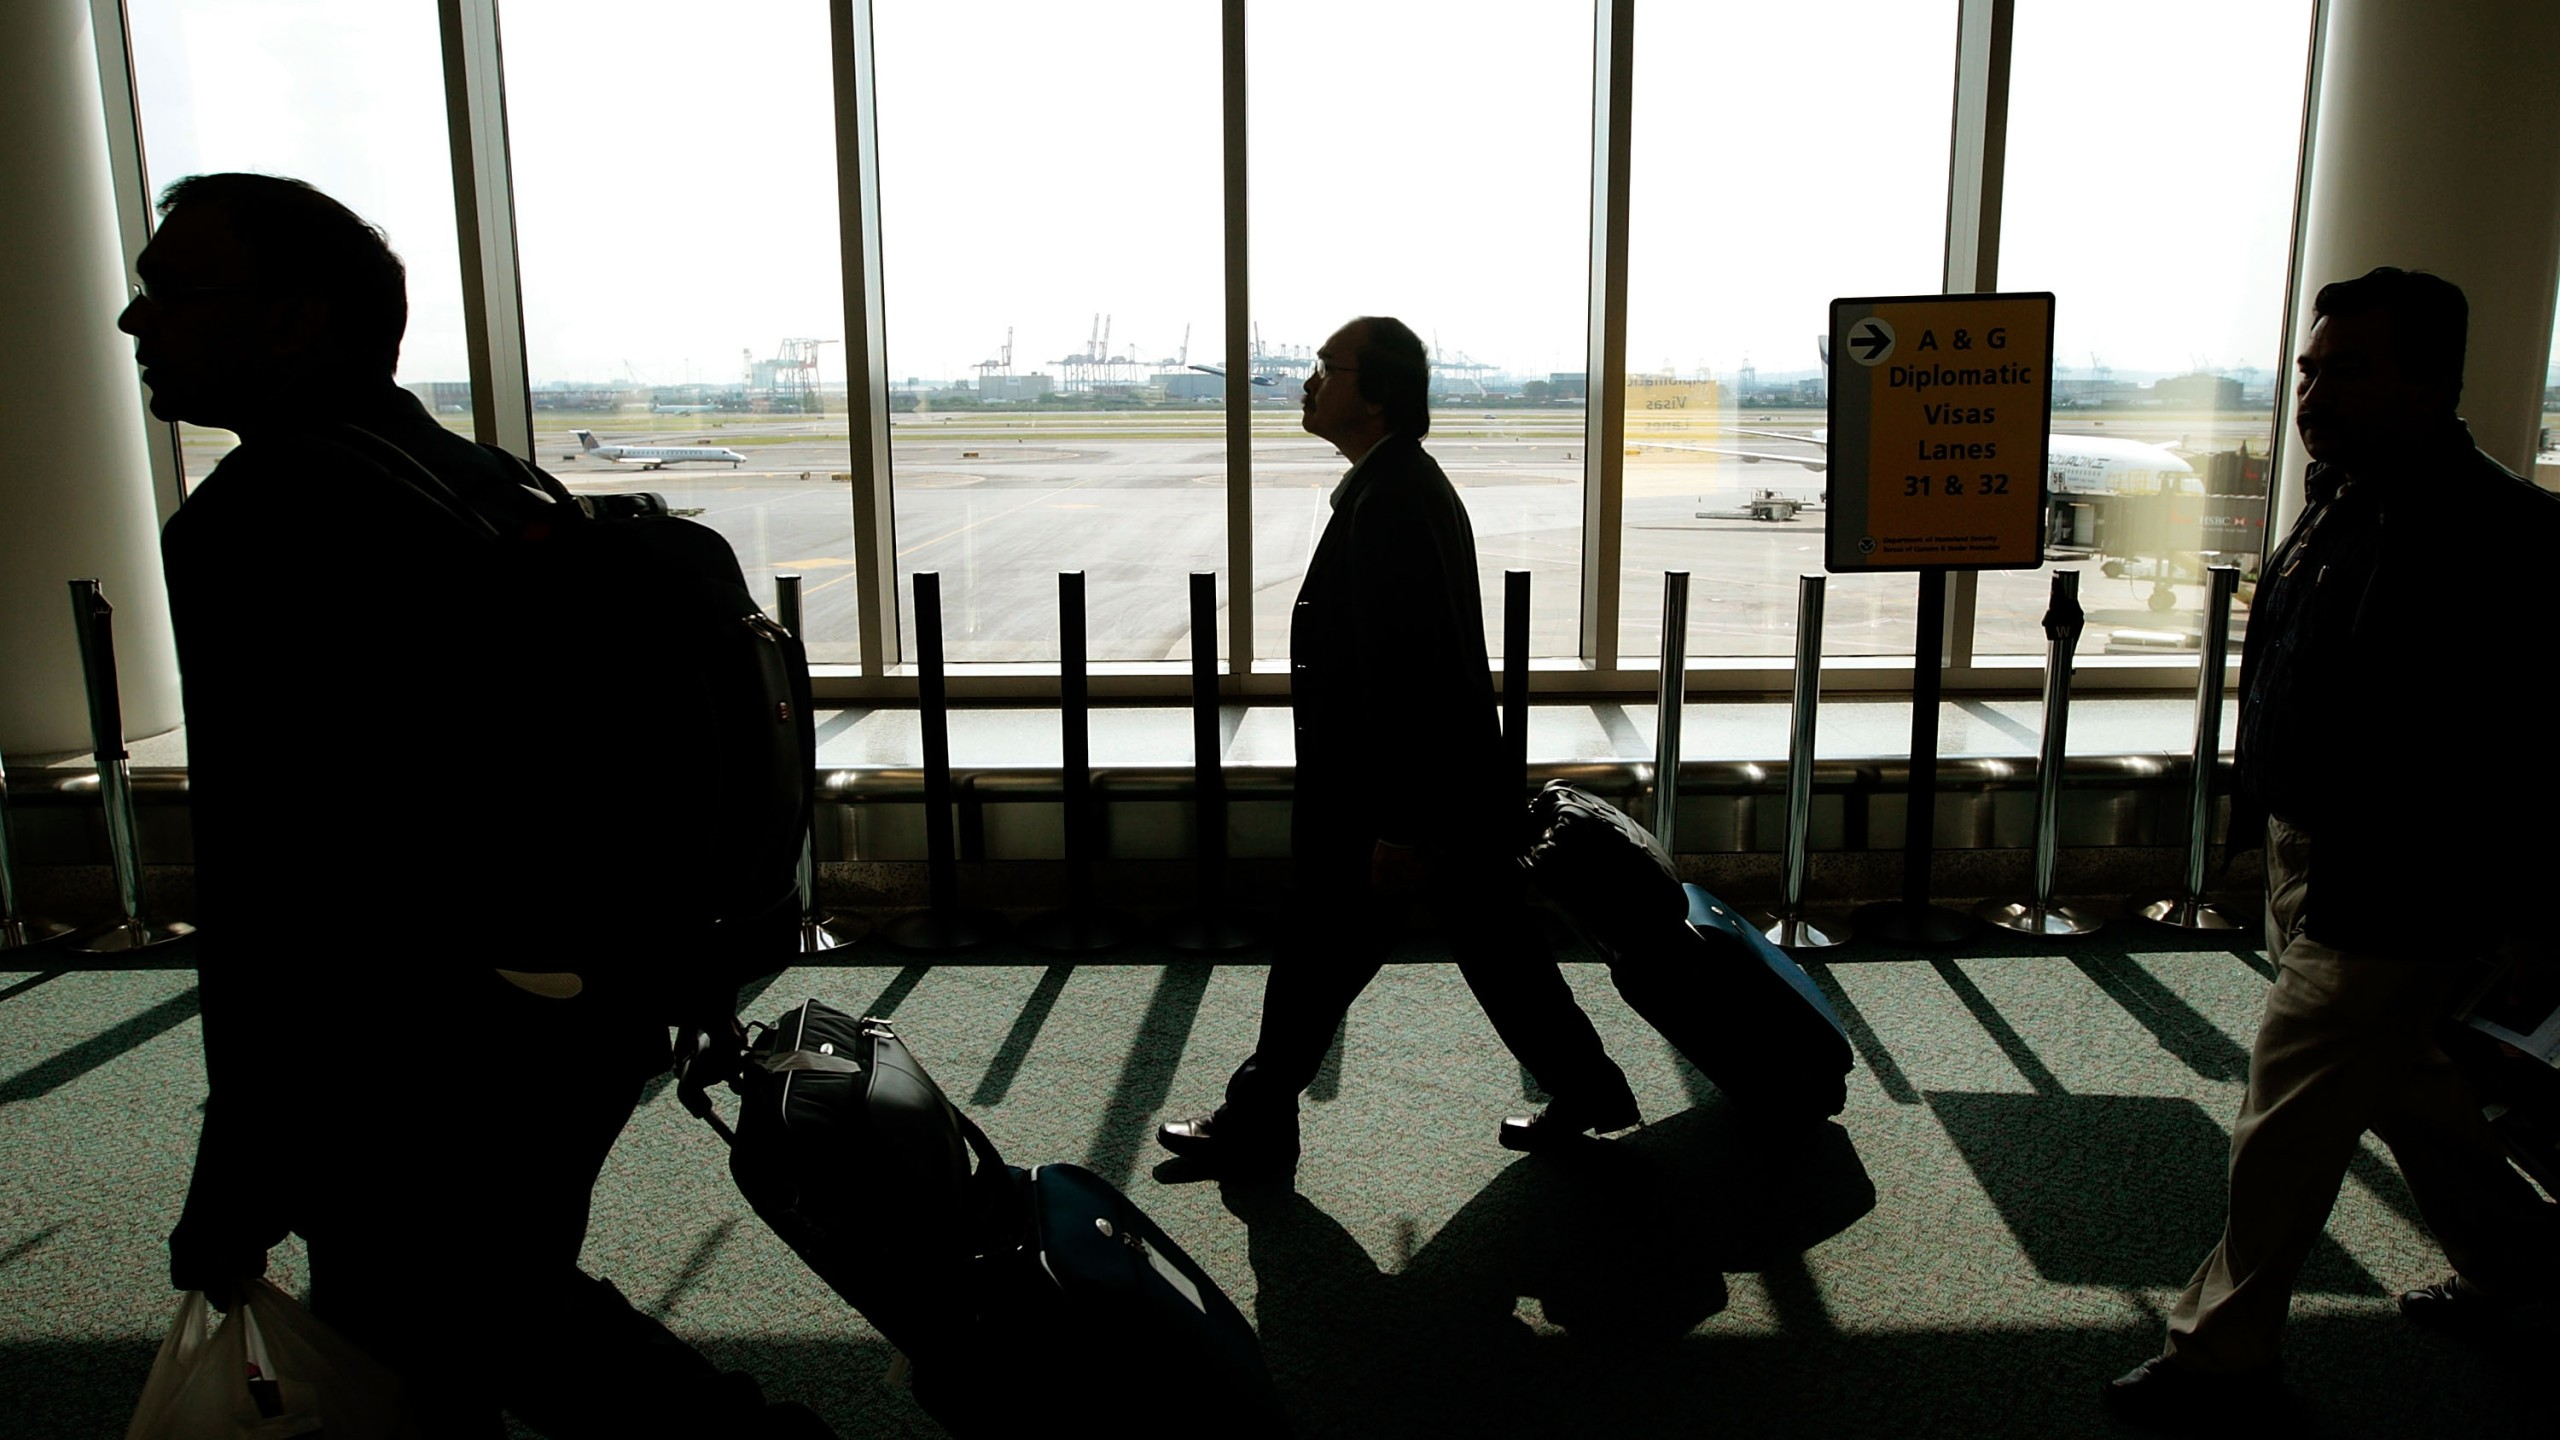 US Customs seizes Ohio family's life savings at airport